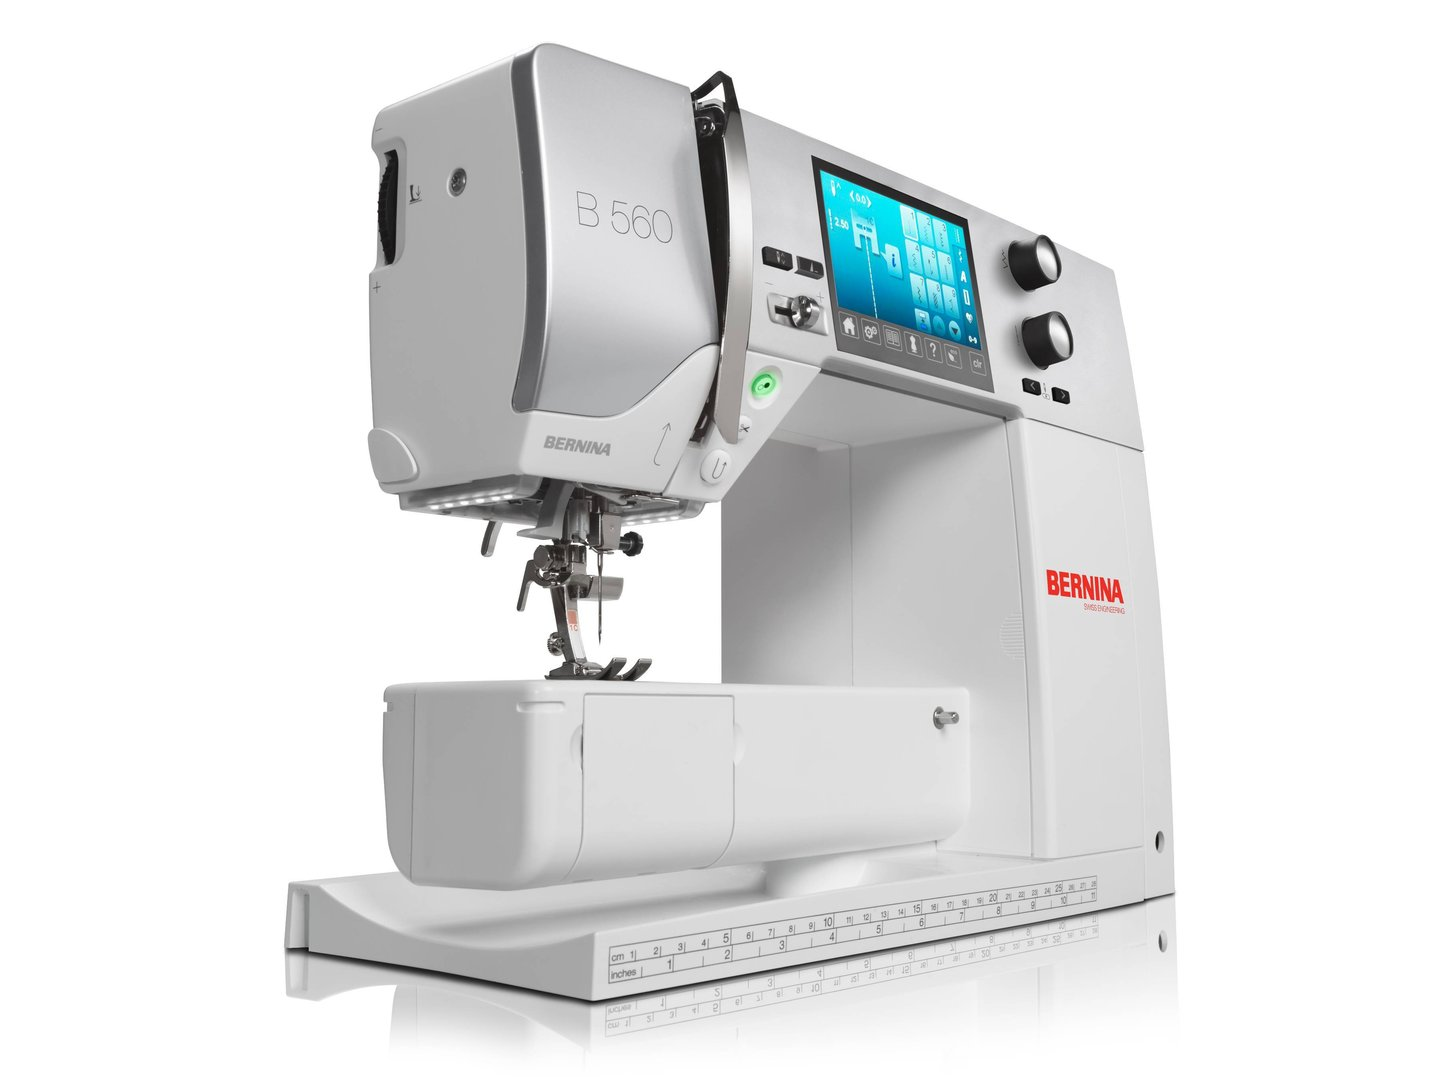 BERNINA B 560 Nähmaschine